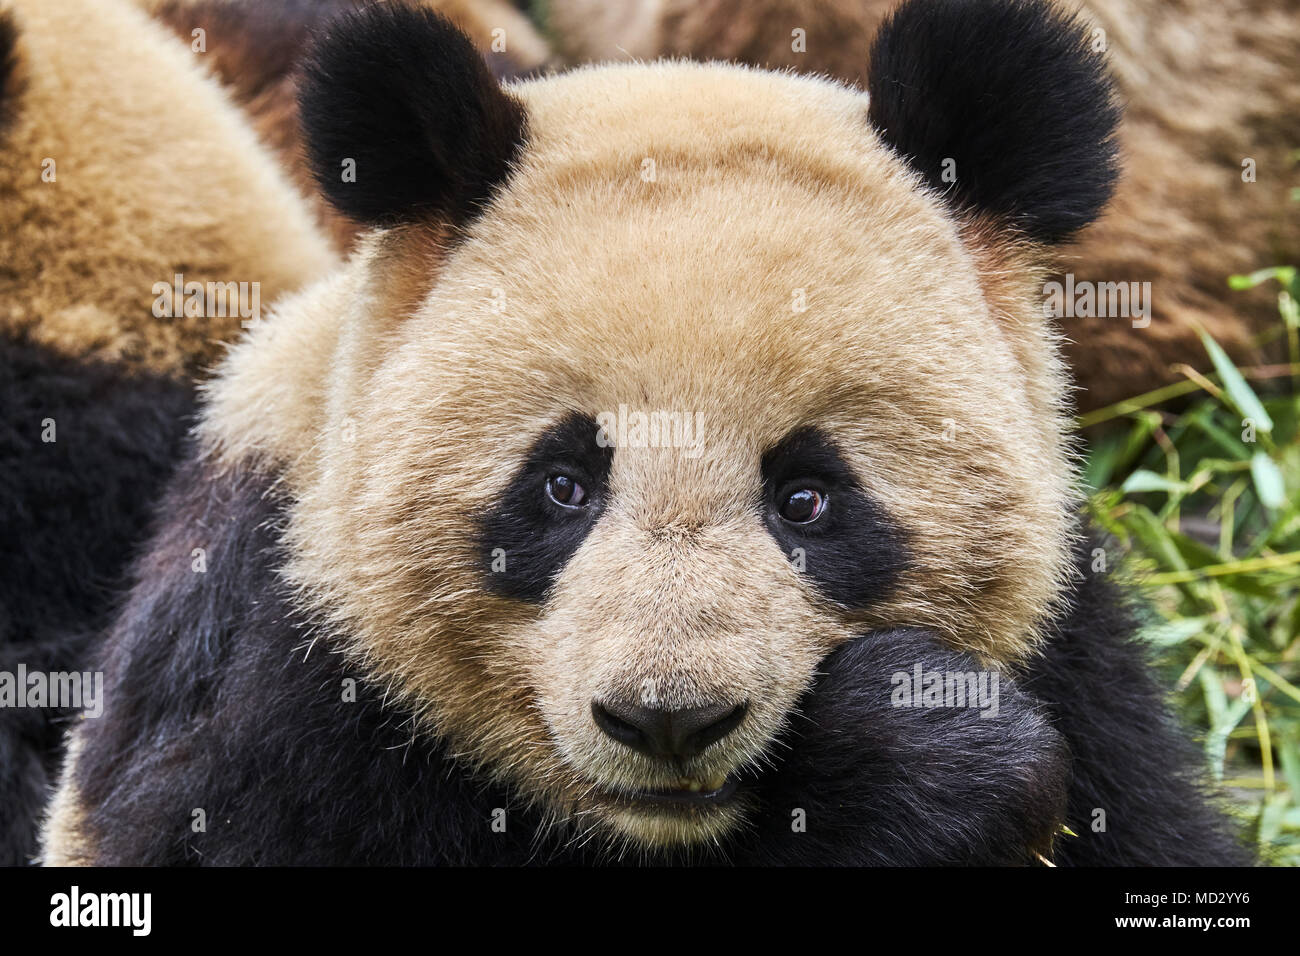 China, Sichuan province, Chengdu, Chengdu giant panda breeding research center - Stock Image